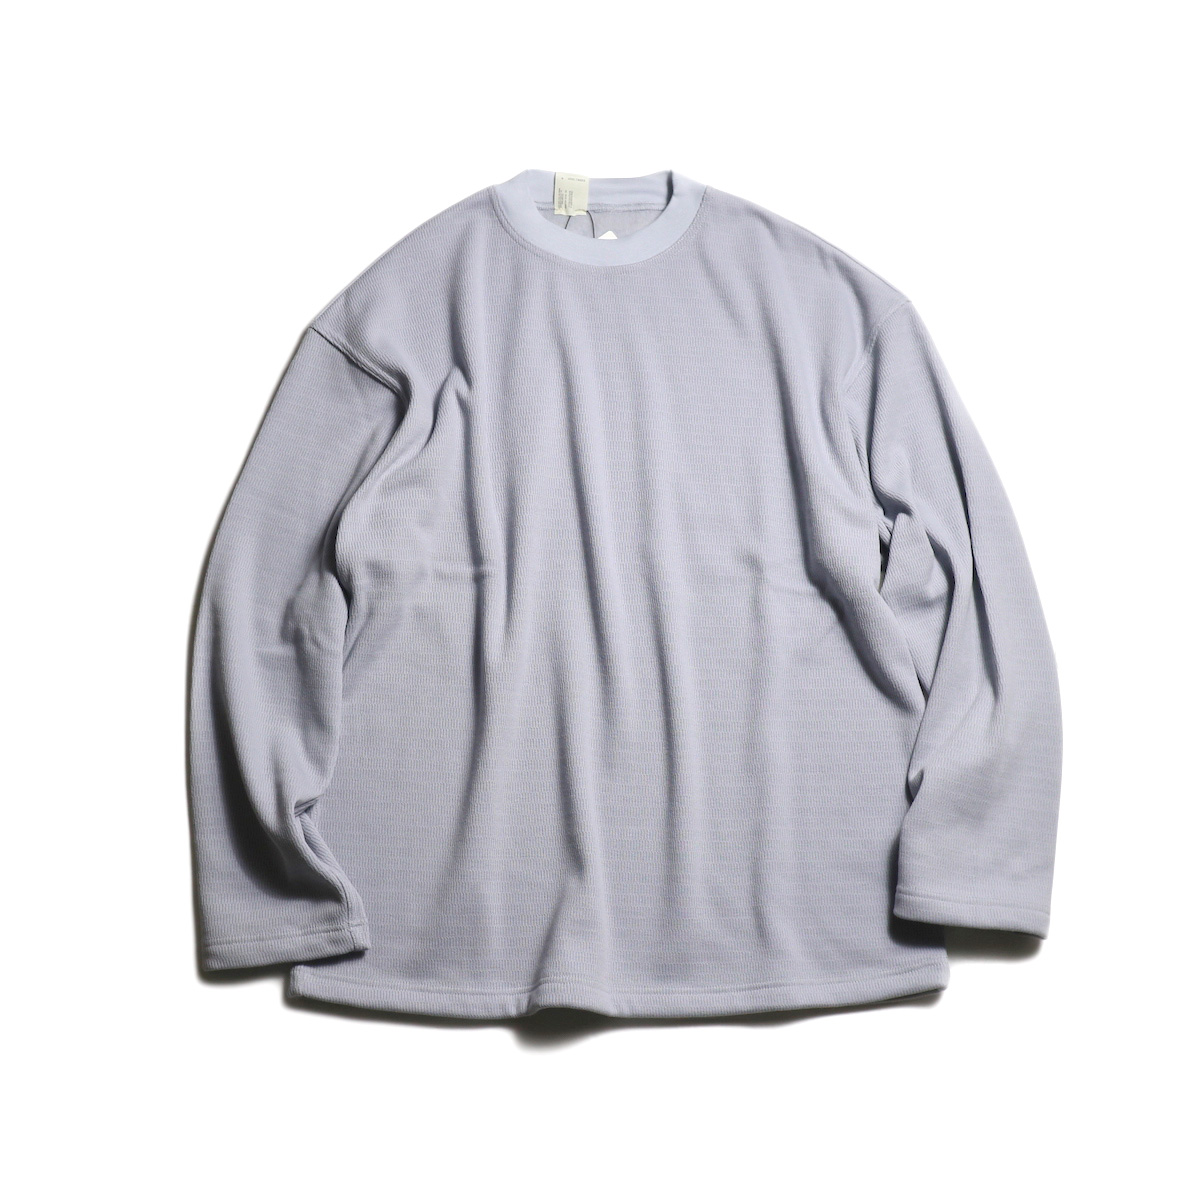 N.HOOLYWOOD / 192-CS14-033 Thermal L/S Tee (Gray)